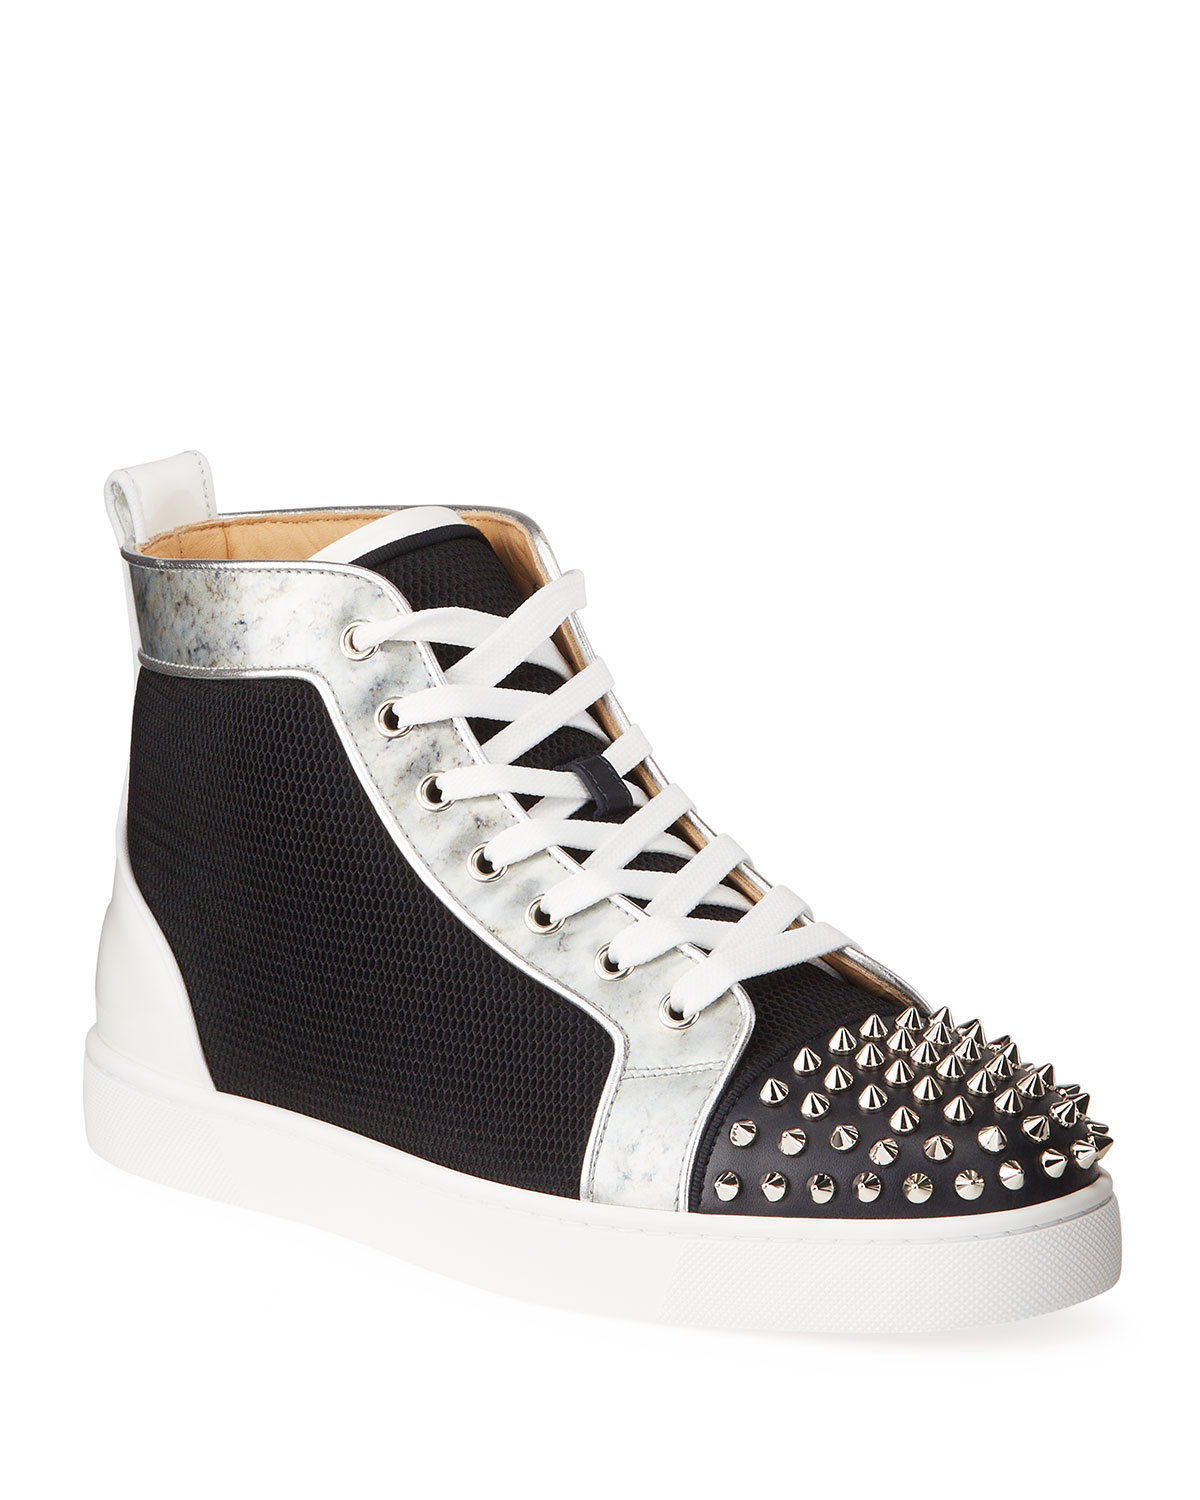 Christian Louboutin MEN'S LOU SPIKES ORLATO MESH/LEATHER HIGH-TOP SNEAKERS